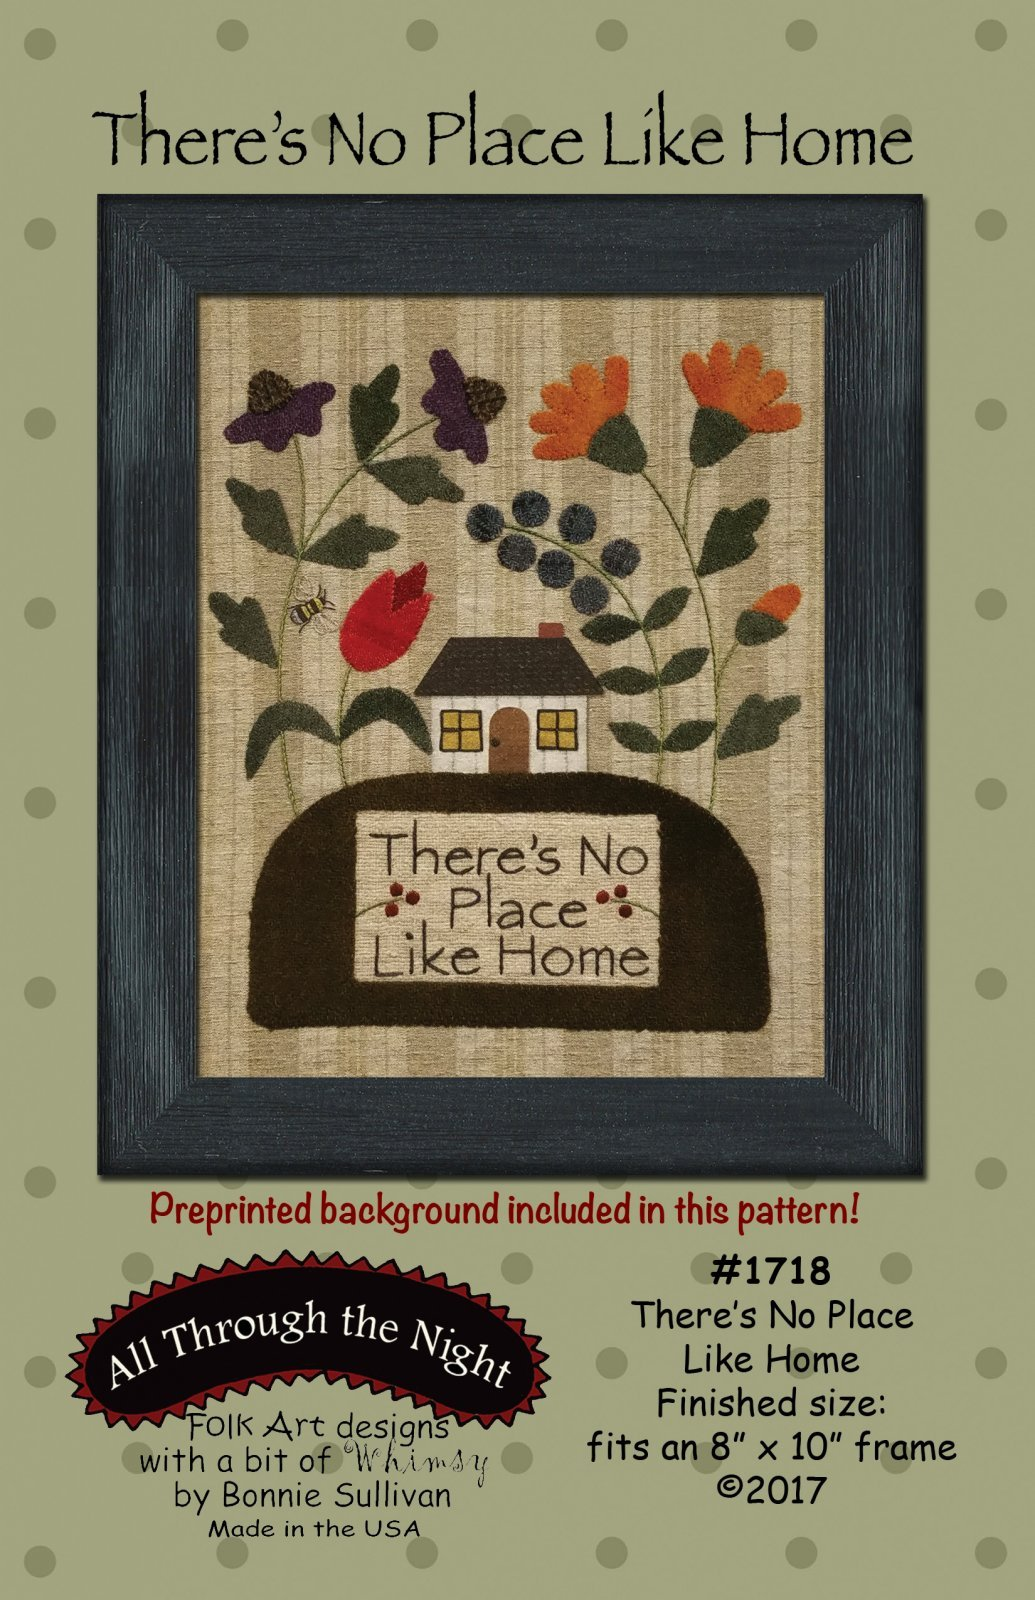 There's No Place Like Home - Embroidery Kit - 8 x 10